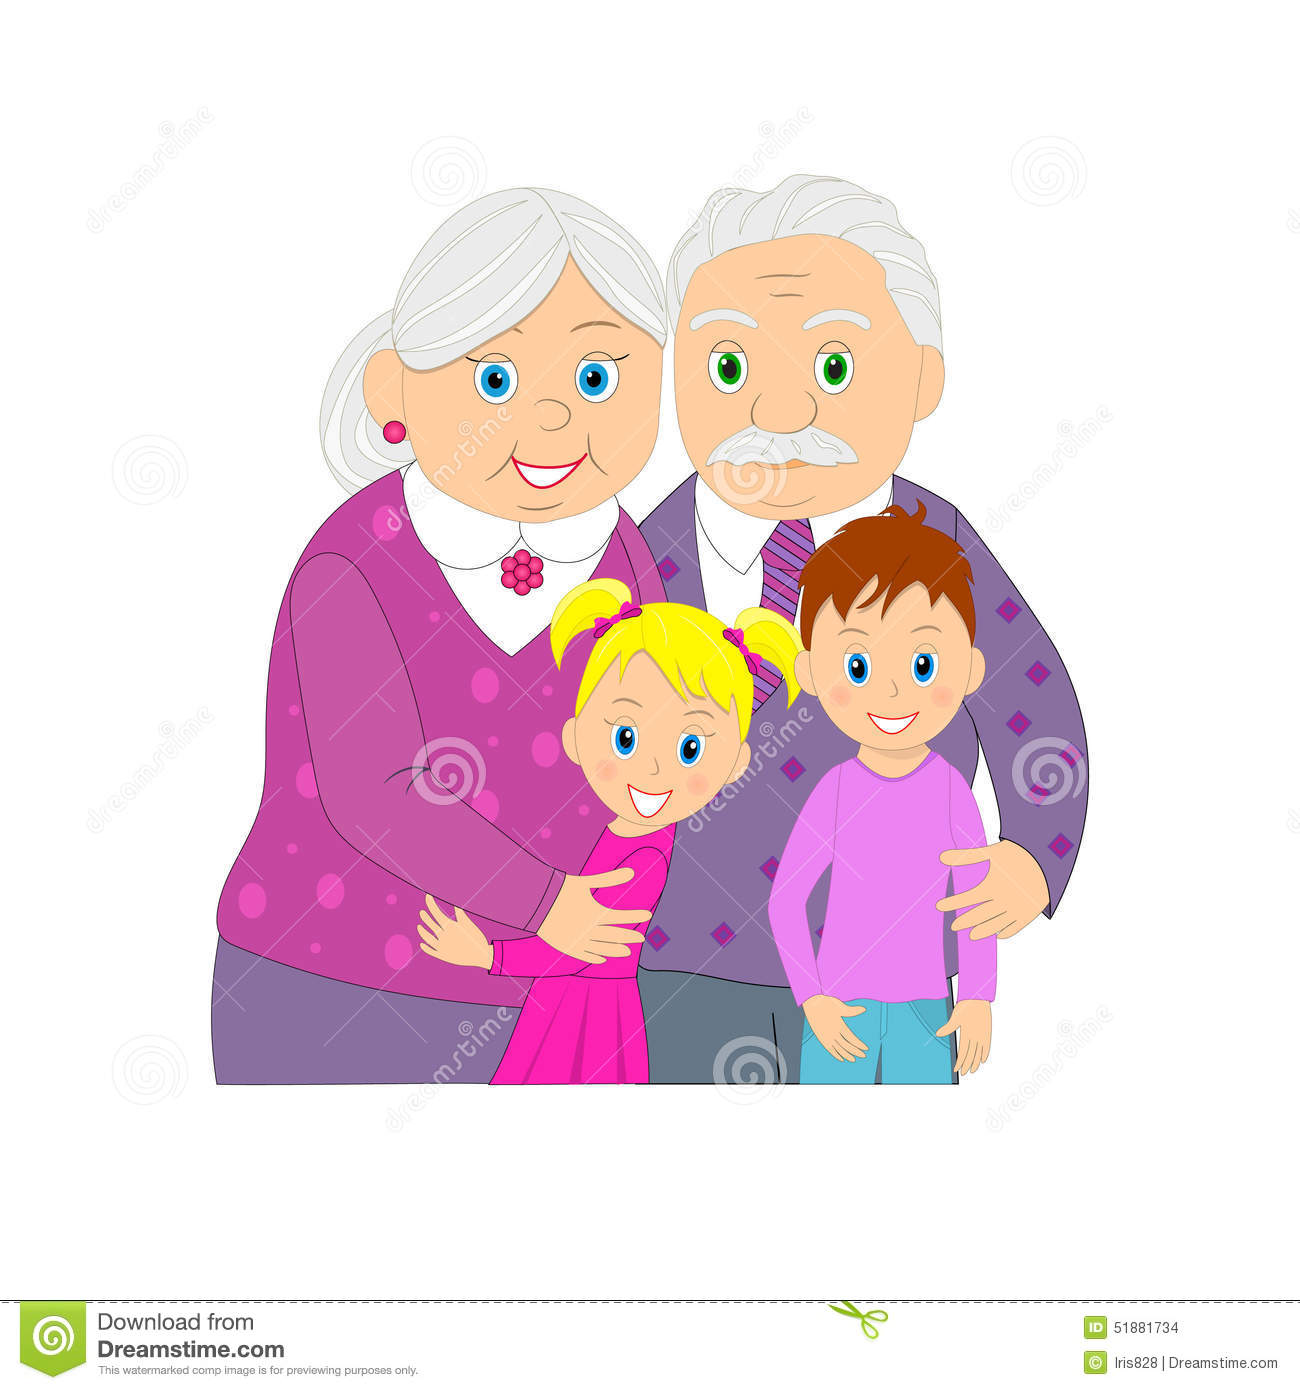 Groeltern und enkel clipart svg freeuse Vector Grandmother With Grandfather Stock Photo - Image: 11986440 svg freeuse